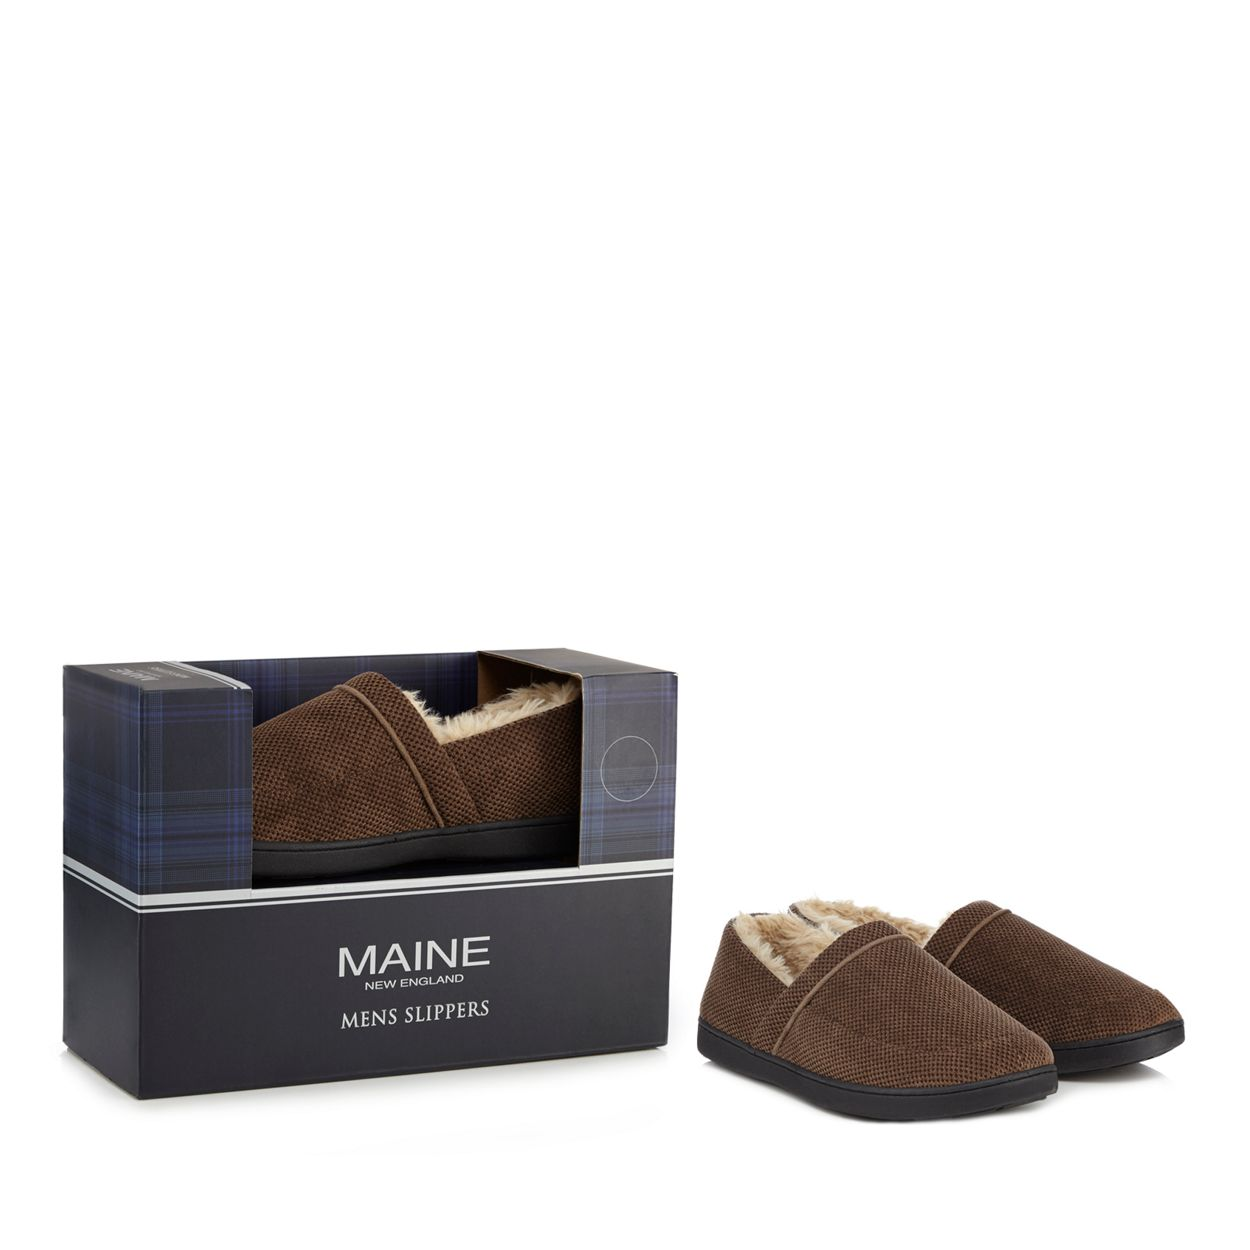 Maine New England Beige slippers in a gift box